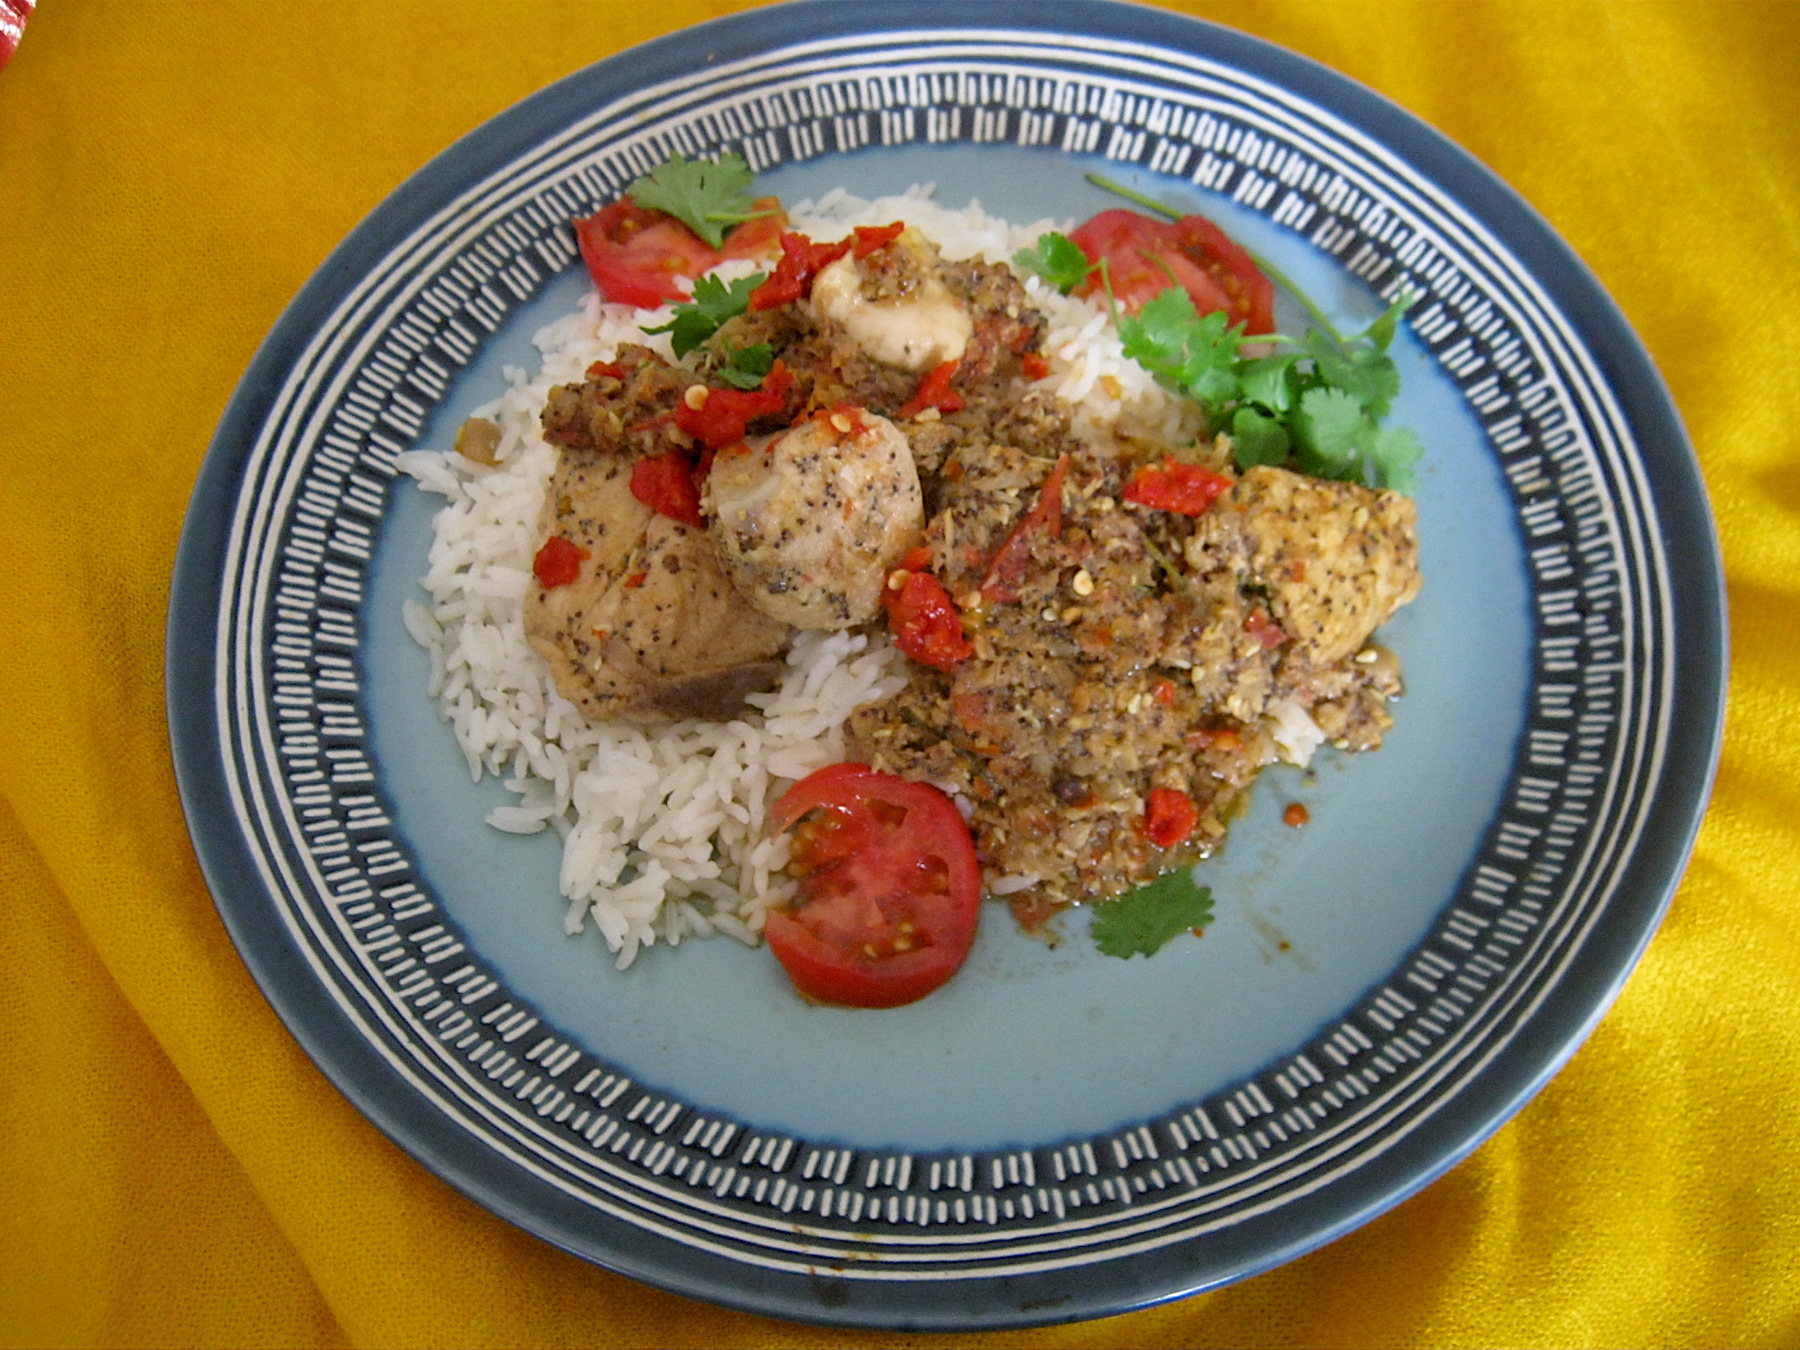 Kolhapuri chicken with steamed rice, garnished with tomato slices and fresh coriander leaves